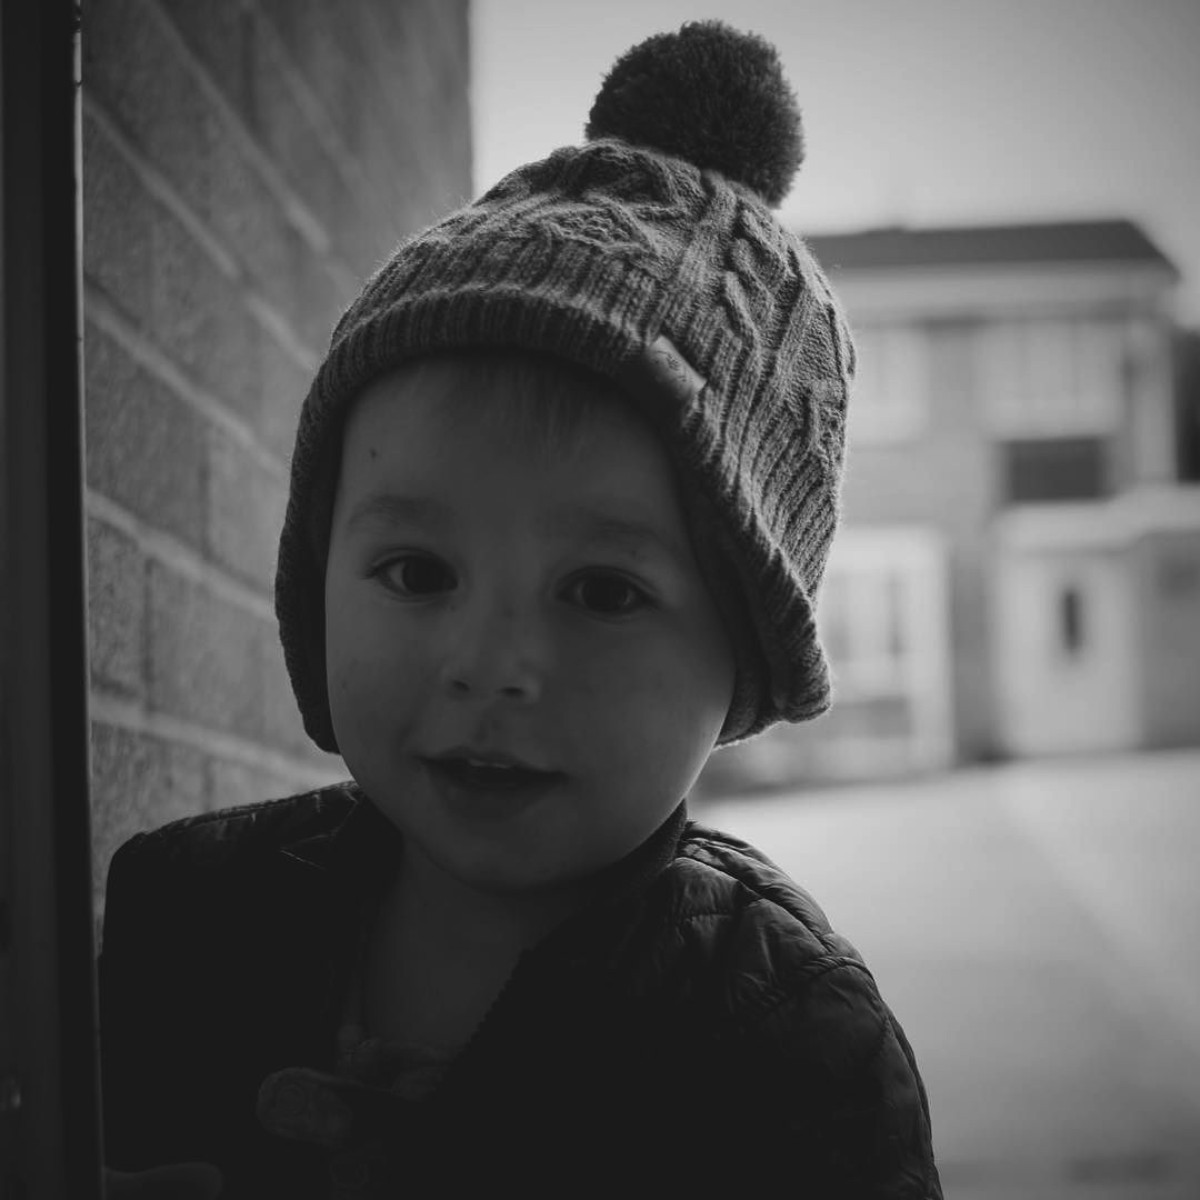 Our month in insta-snaps; October 2016 - Young toddler boy wearing H&M bobble hat